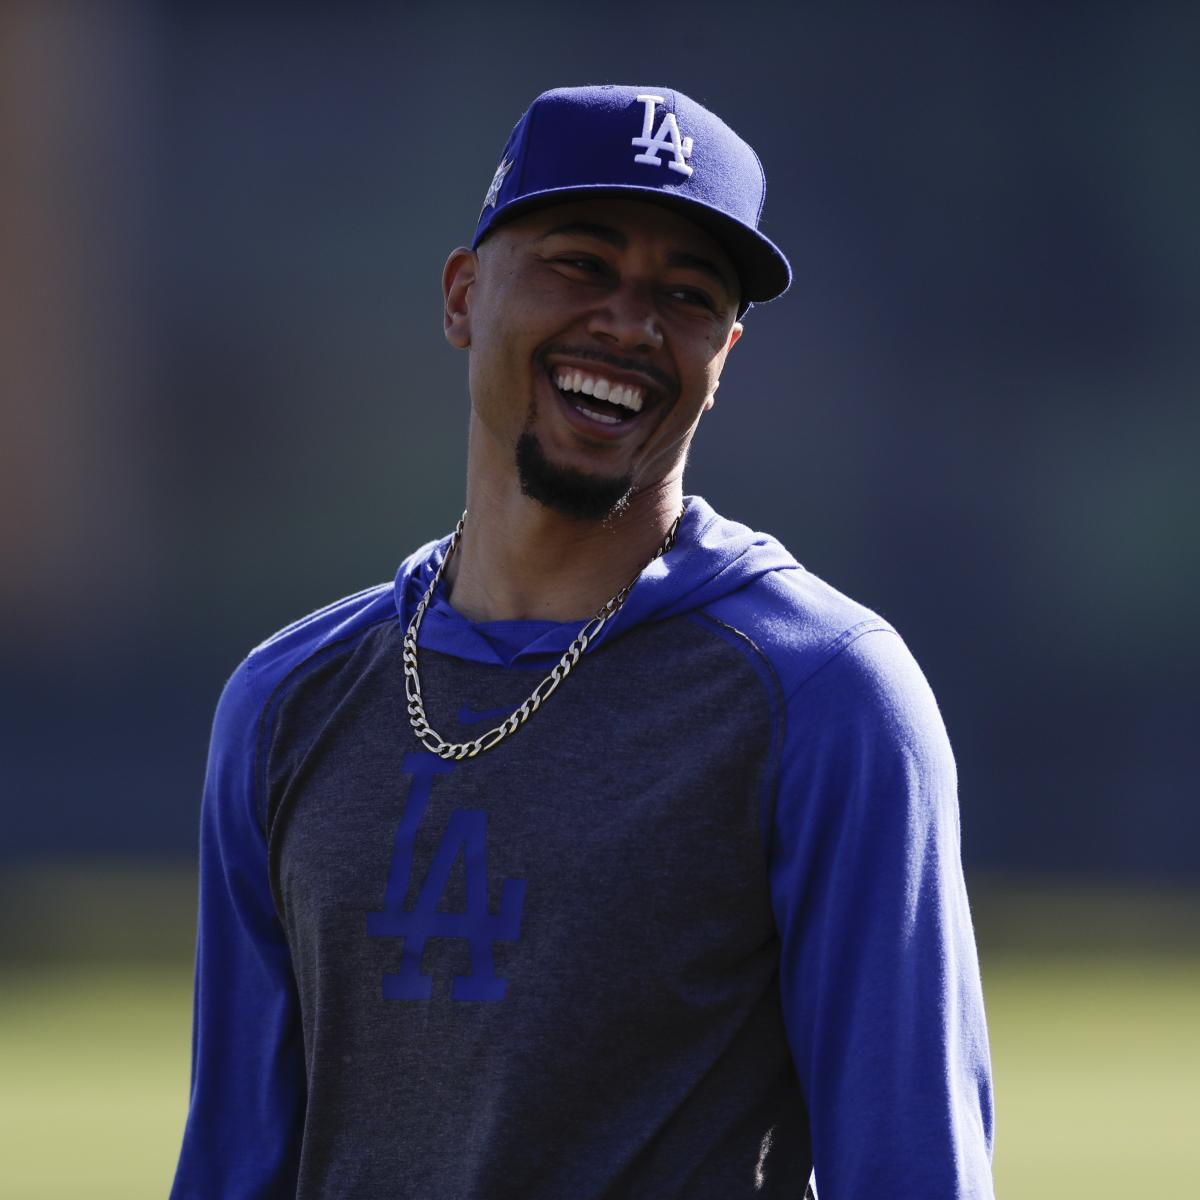 Mookie Betts Expected to Bat Leadoff for Dodgers After Trade, Says Dave Roberts